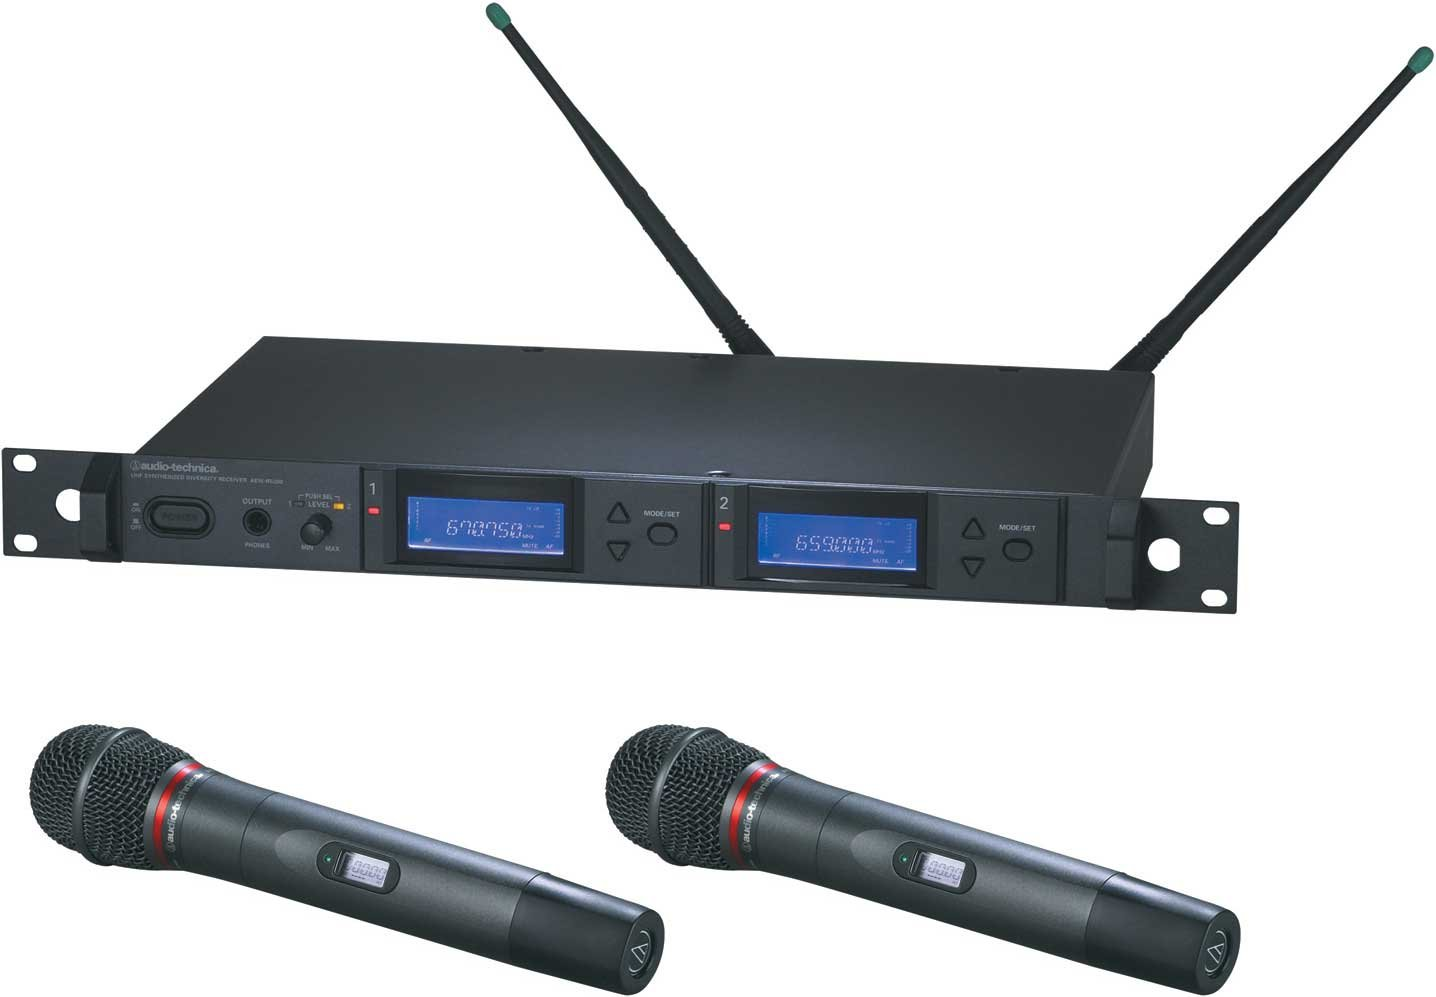 Dual Wireless Microphone Handheld System with 2 x AEW-T4100a Cardioid Dynamic Mics, UHF Band C: 541.500 MHz to 566.375 MHz